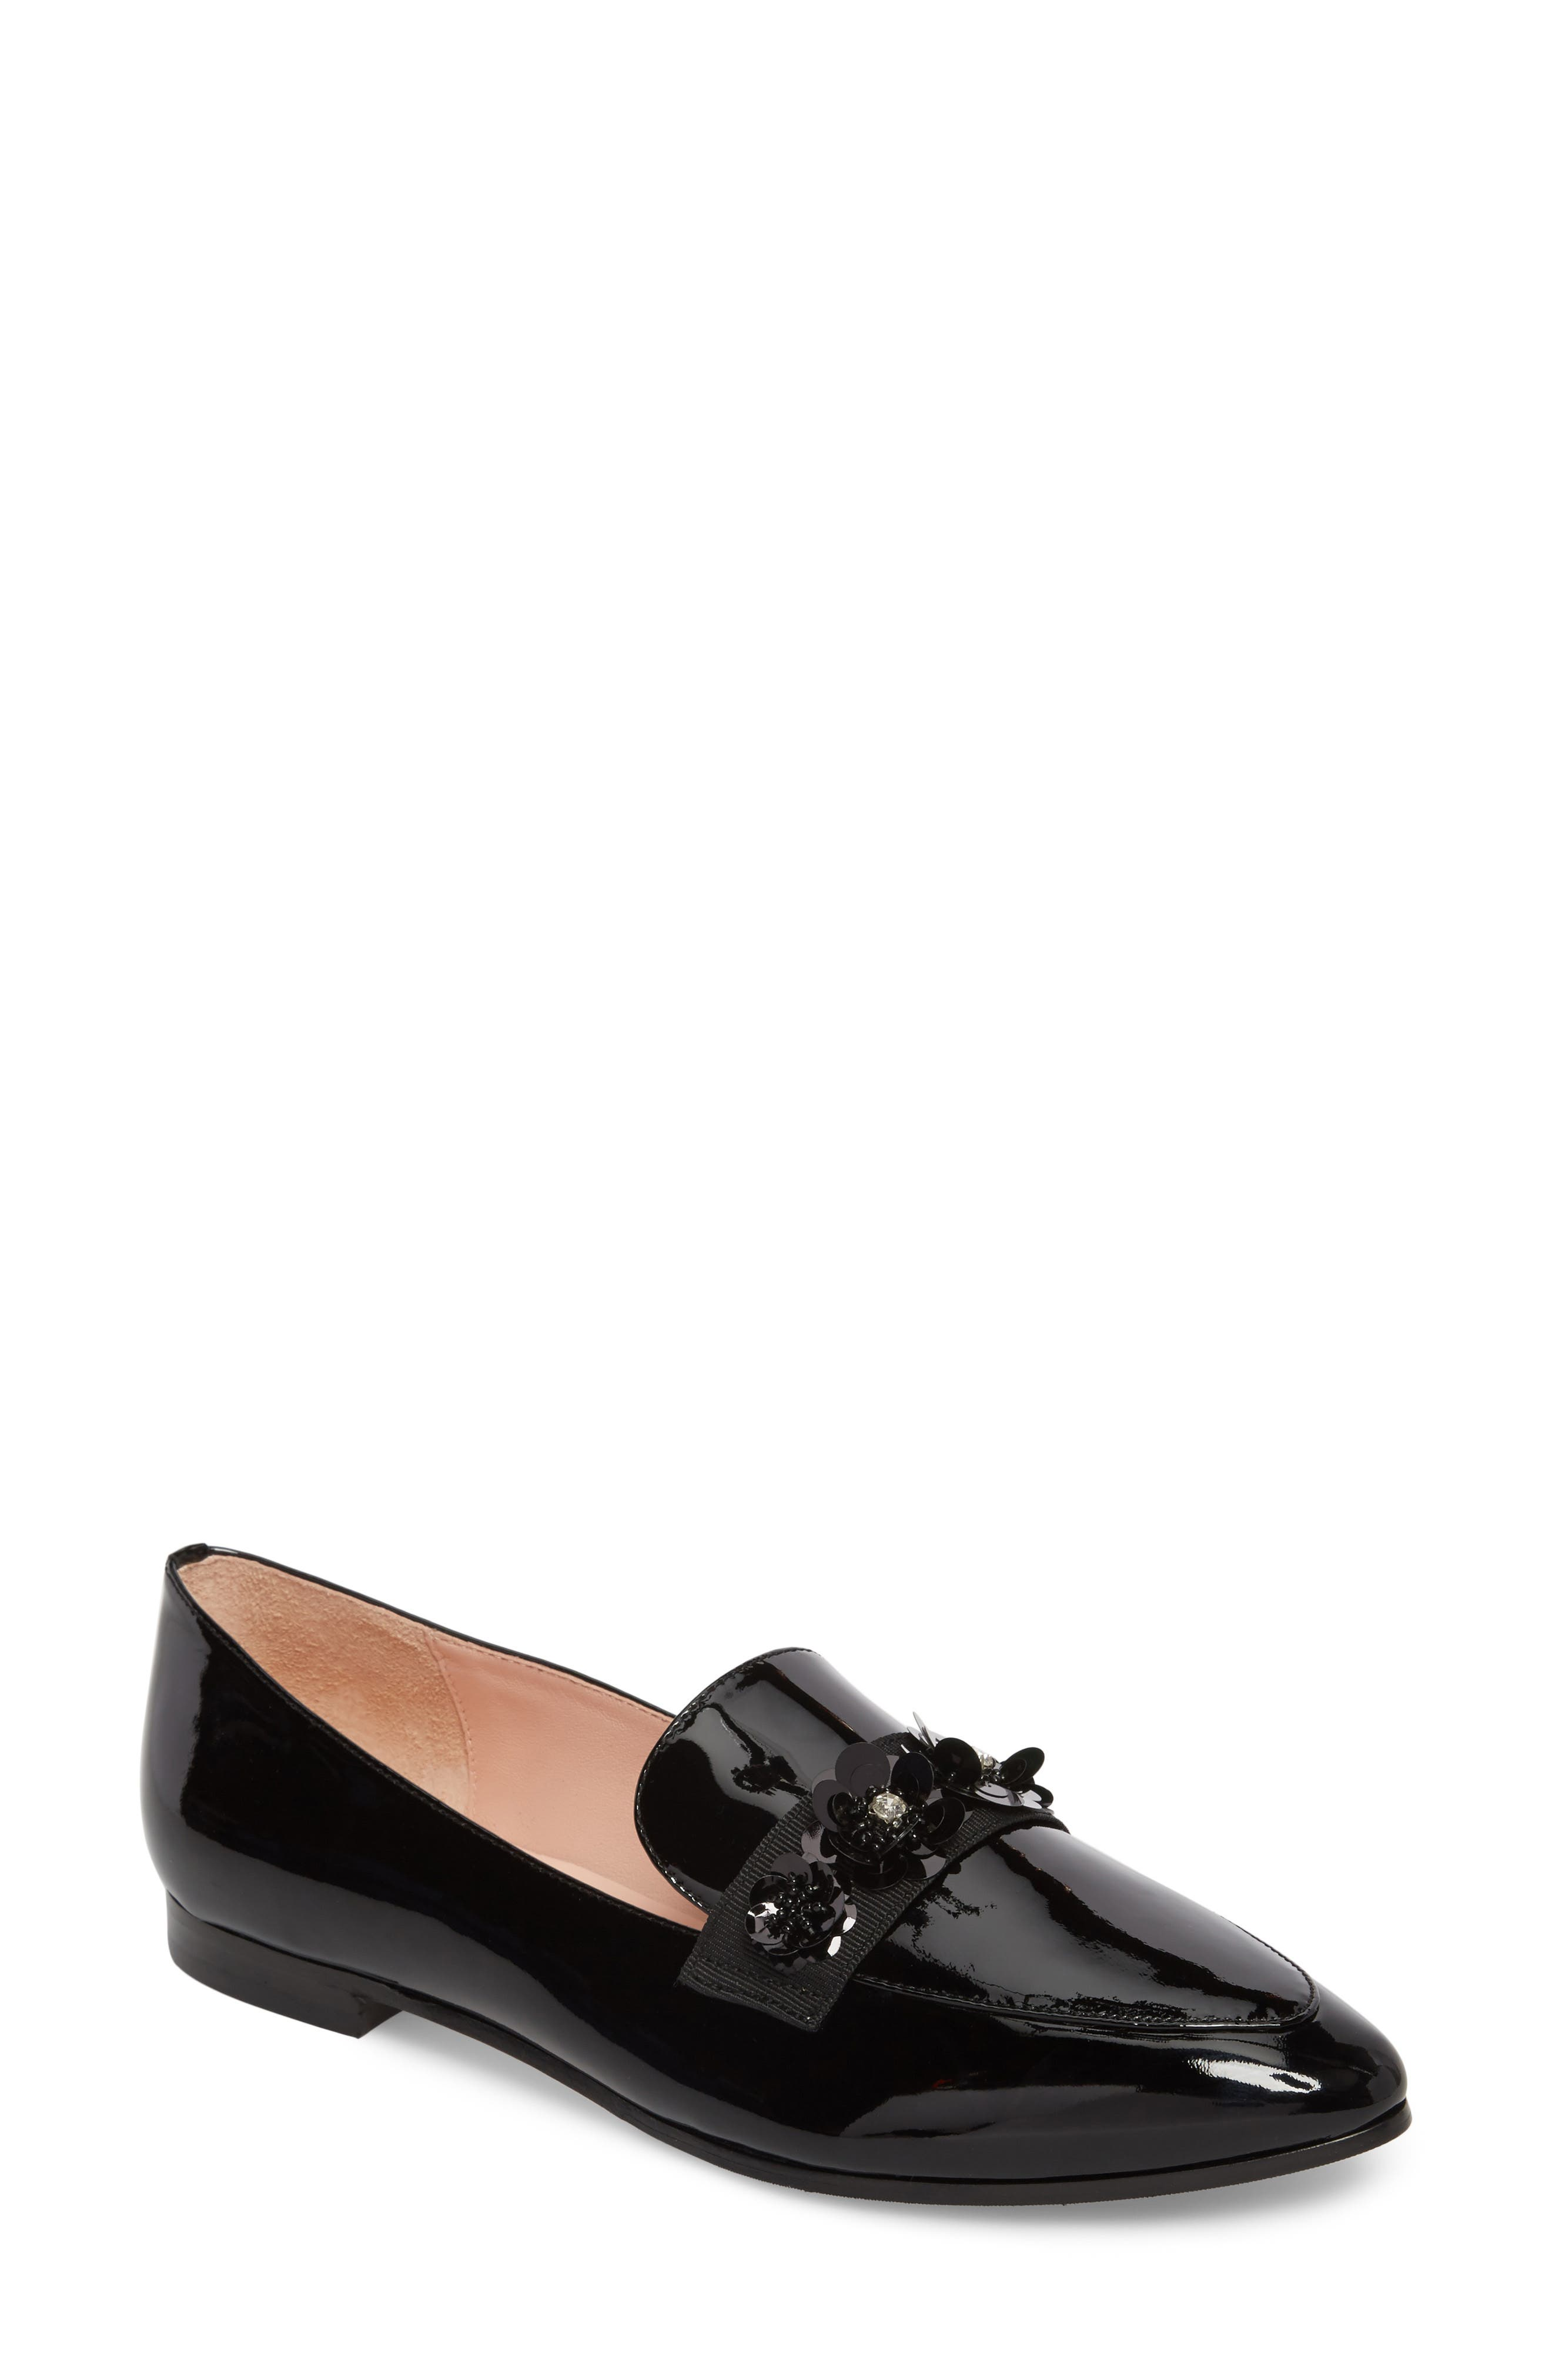 3f441aaac31d Kate Spade Cleo Embellished Loafer In Black Patent